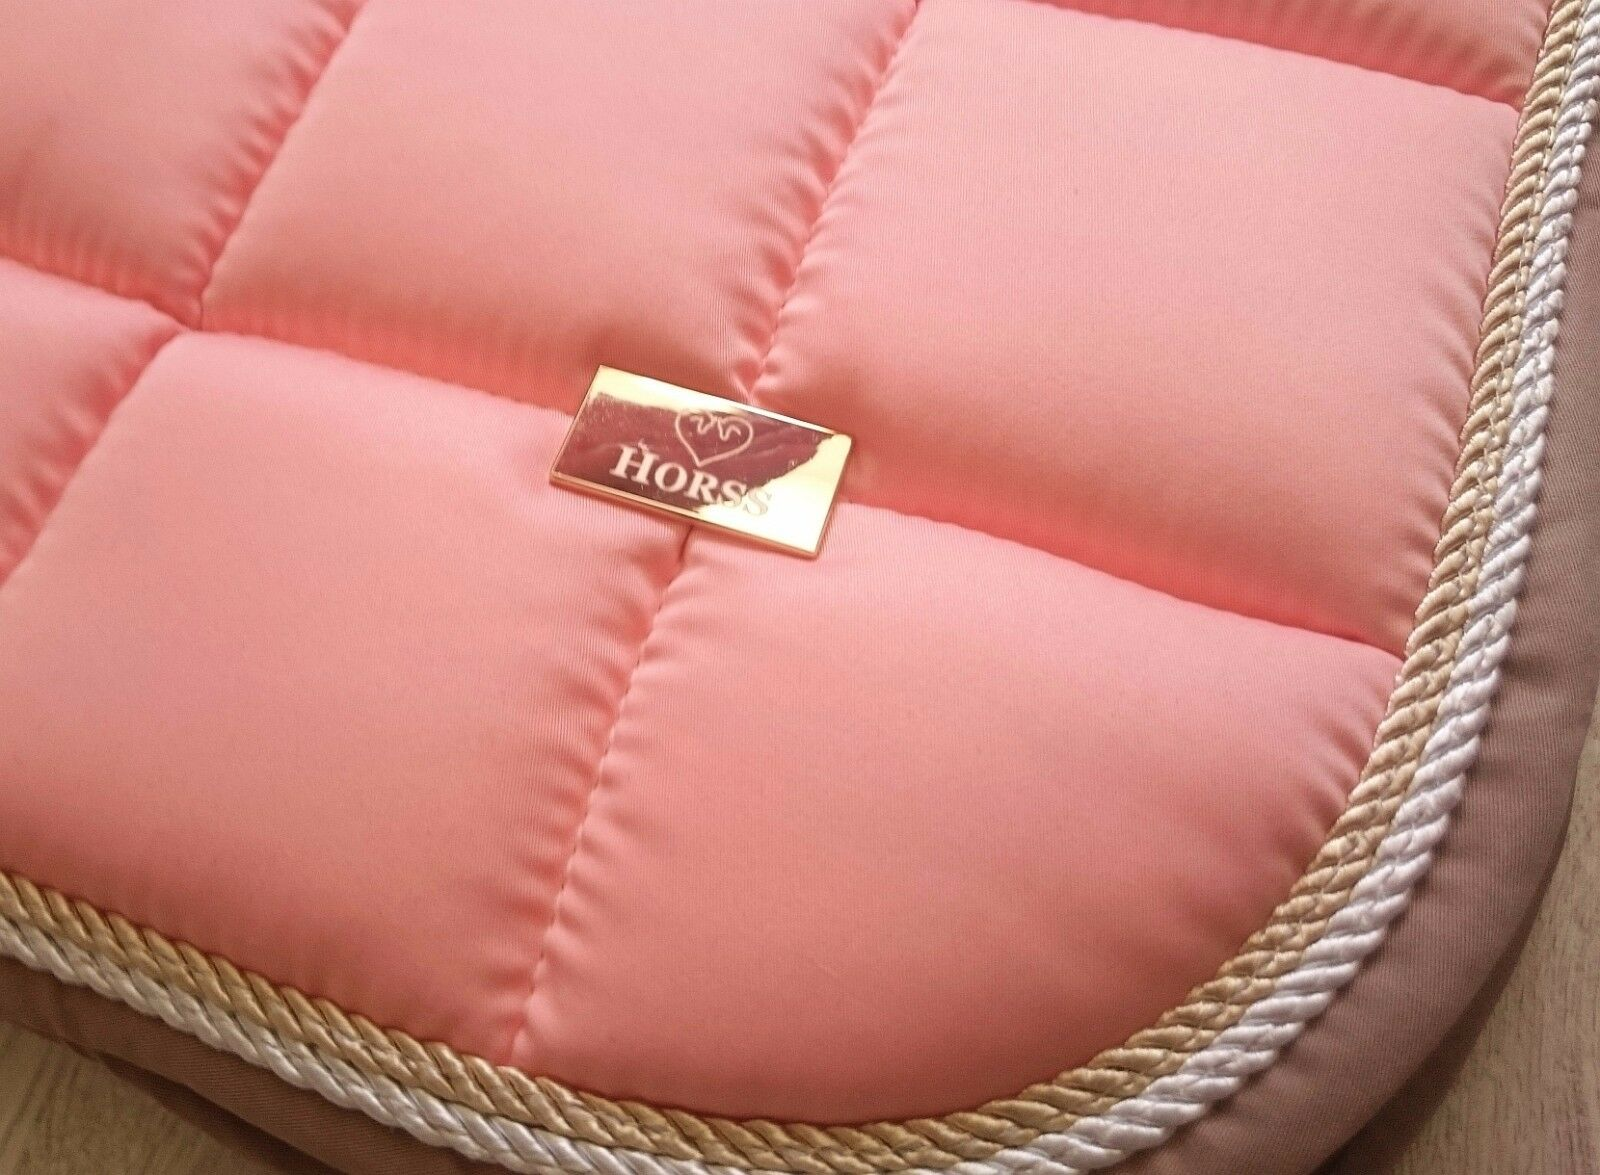 HORSS Exclusive saddlepad saddlepad saddlepad - Shell coral / Beige aa40bc